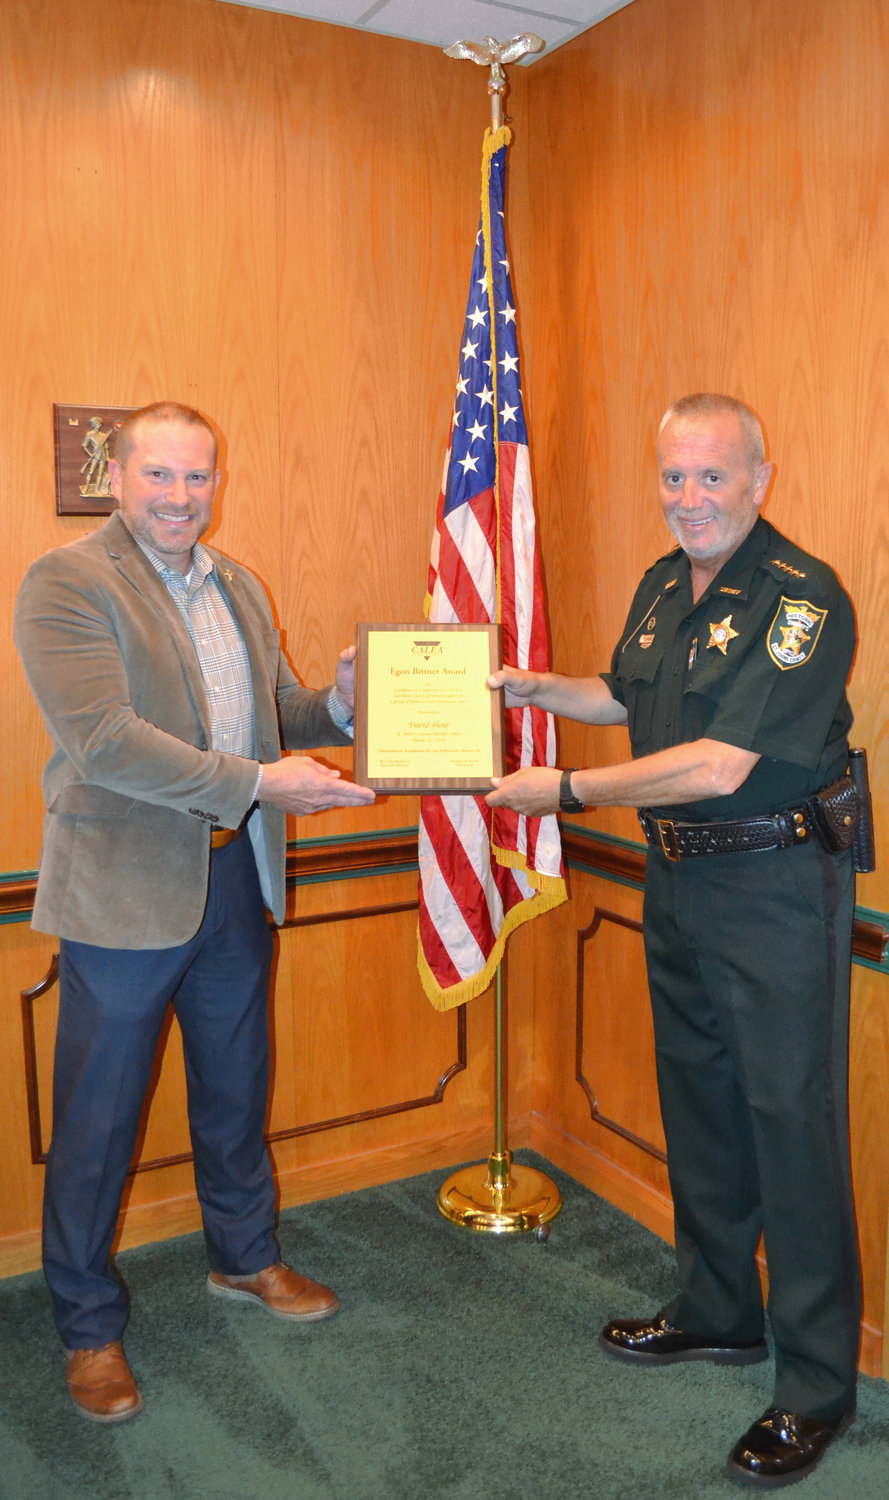 SJSO Director Jason Sheffield (left) presents the Bittner Award to St. Johns County Sheriff David Shoar.